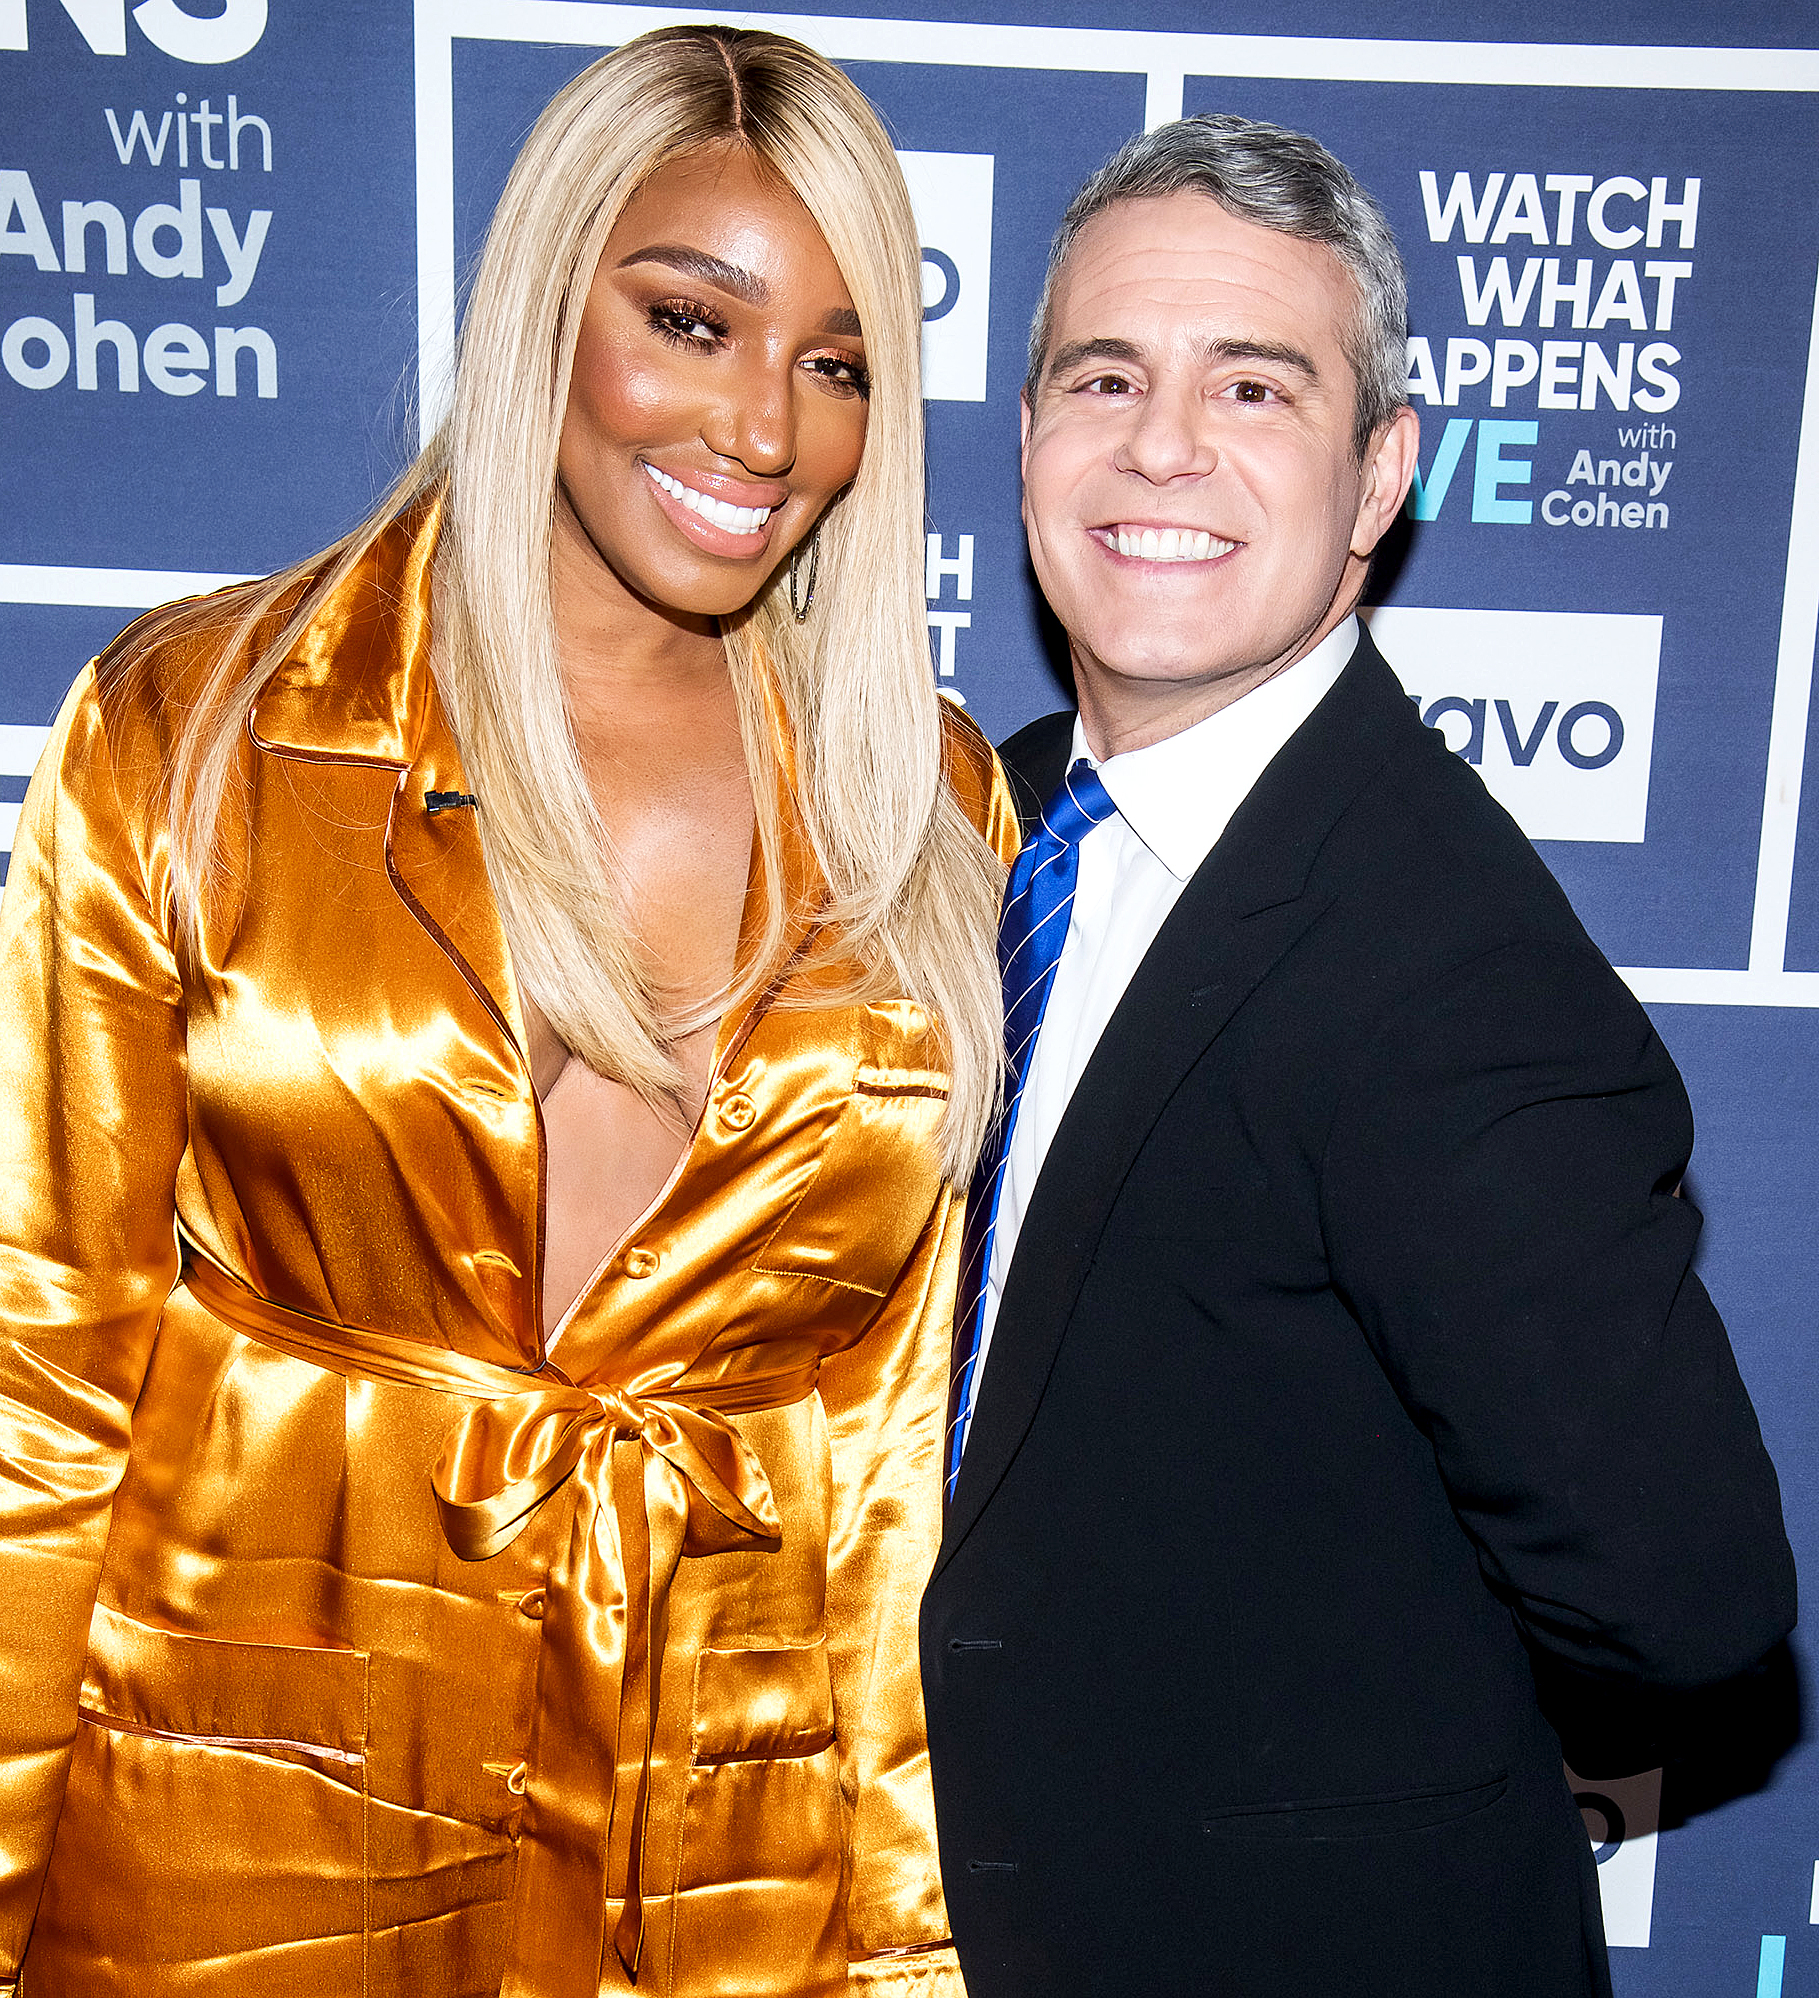 NeNe-Leakes-Denies-Ever-Following-Andy-Cohen